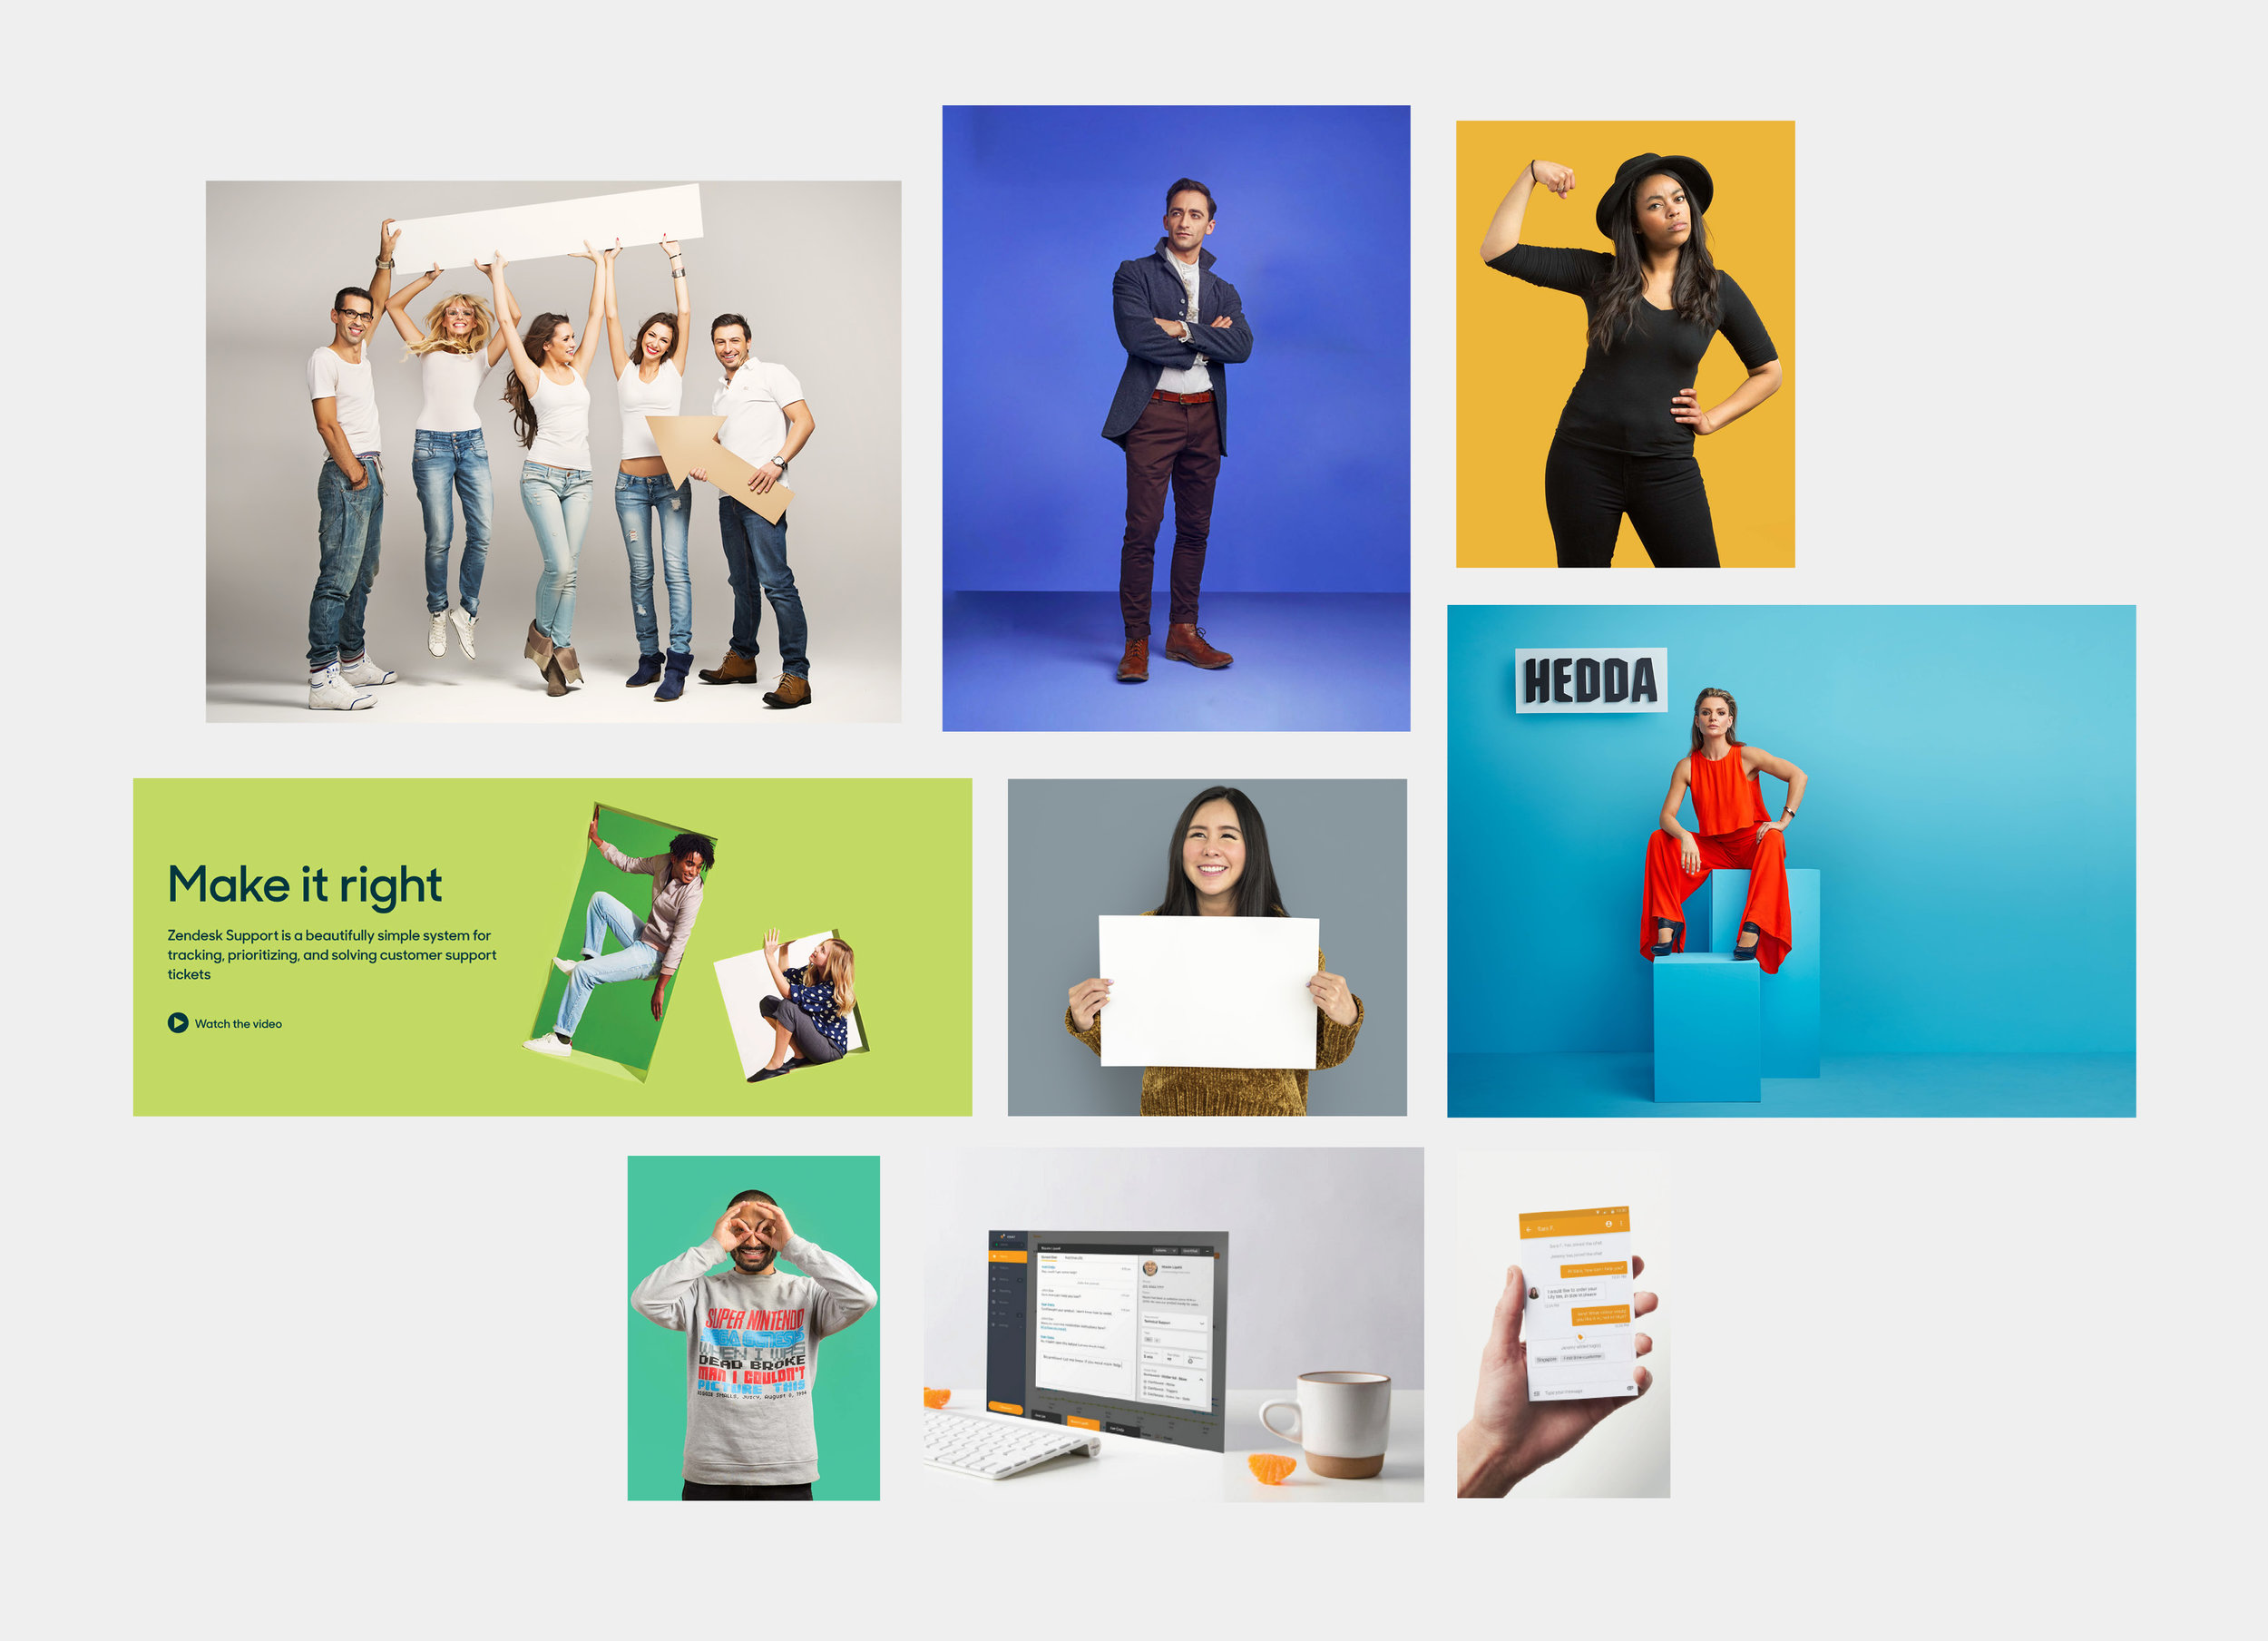 Initial photography moodboard - Expressive poses on plain backgrounds. Models holding cutouts. Creative display of the UI.